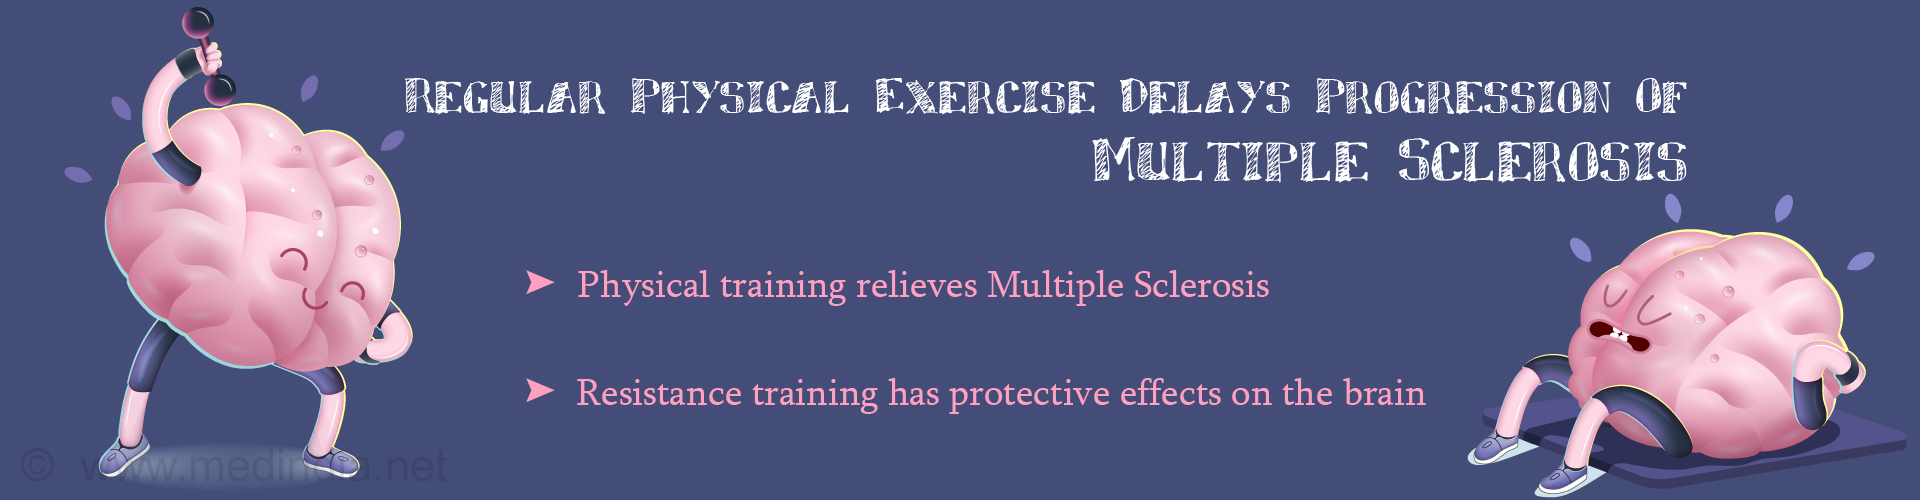 Can Resistance Training Slow Down The Progression Of Multiple Sclerosis